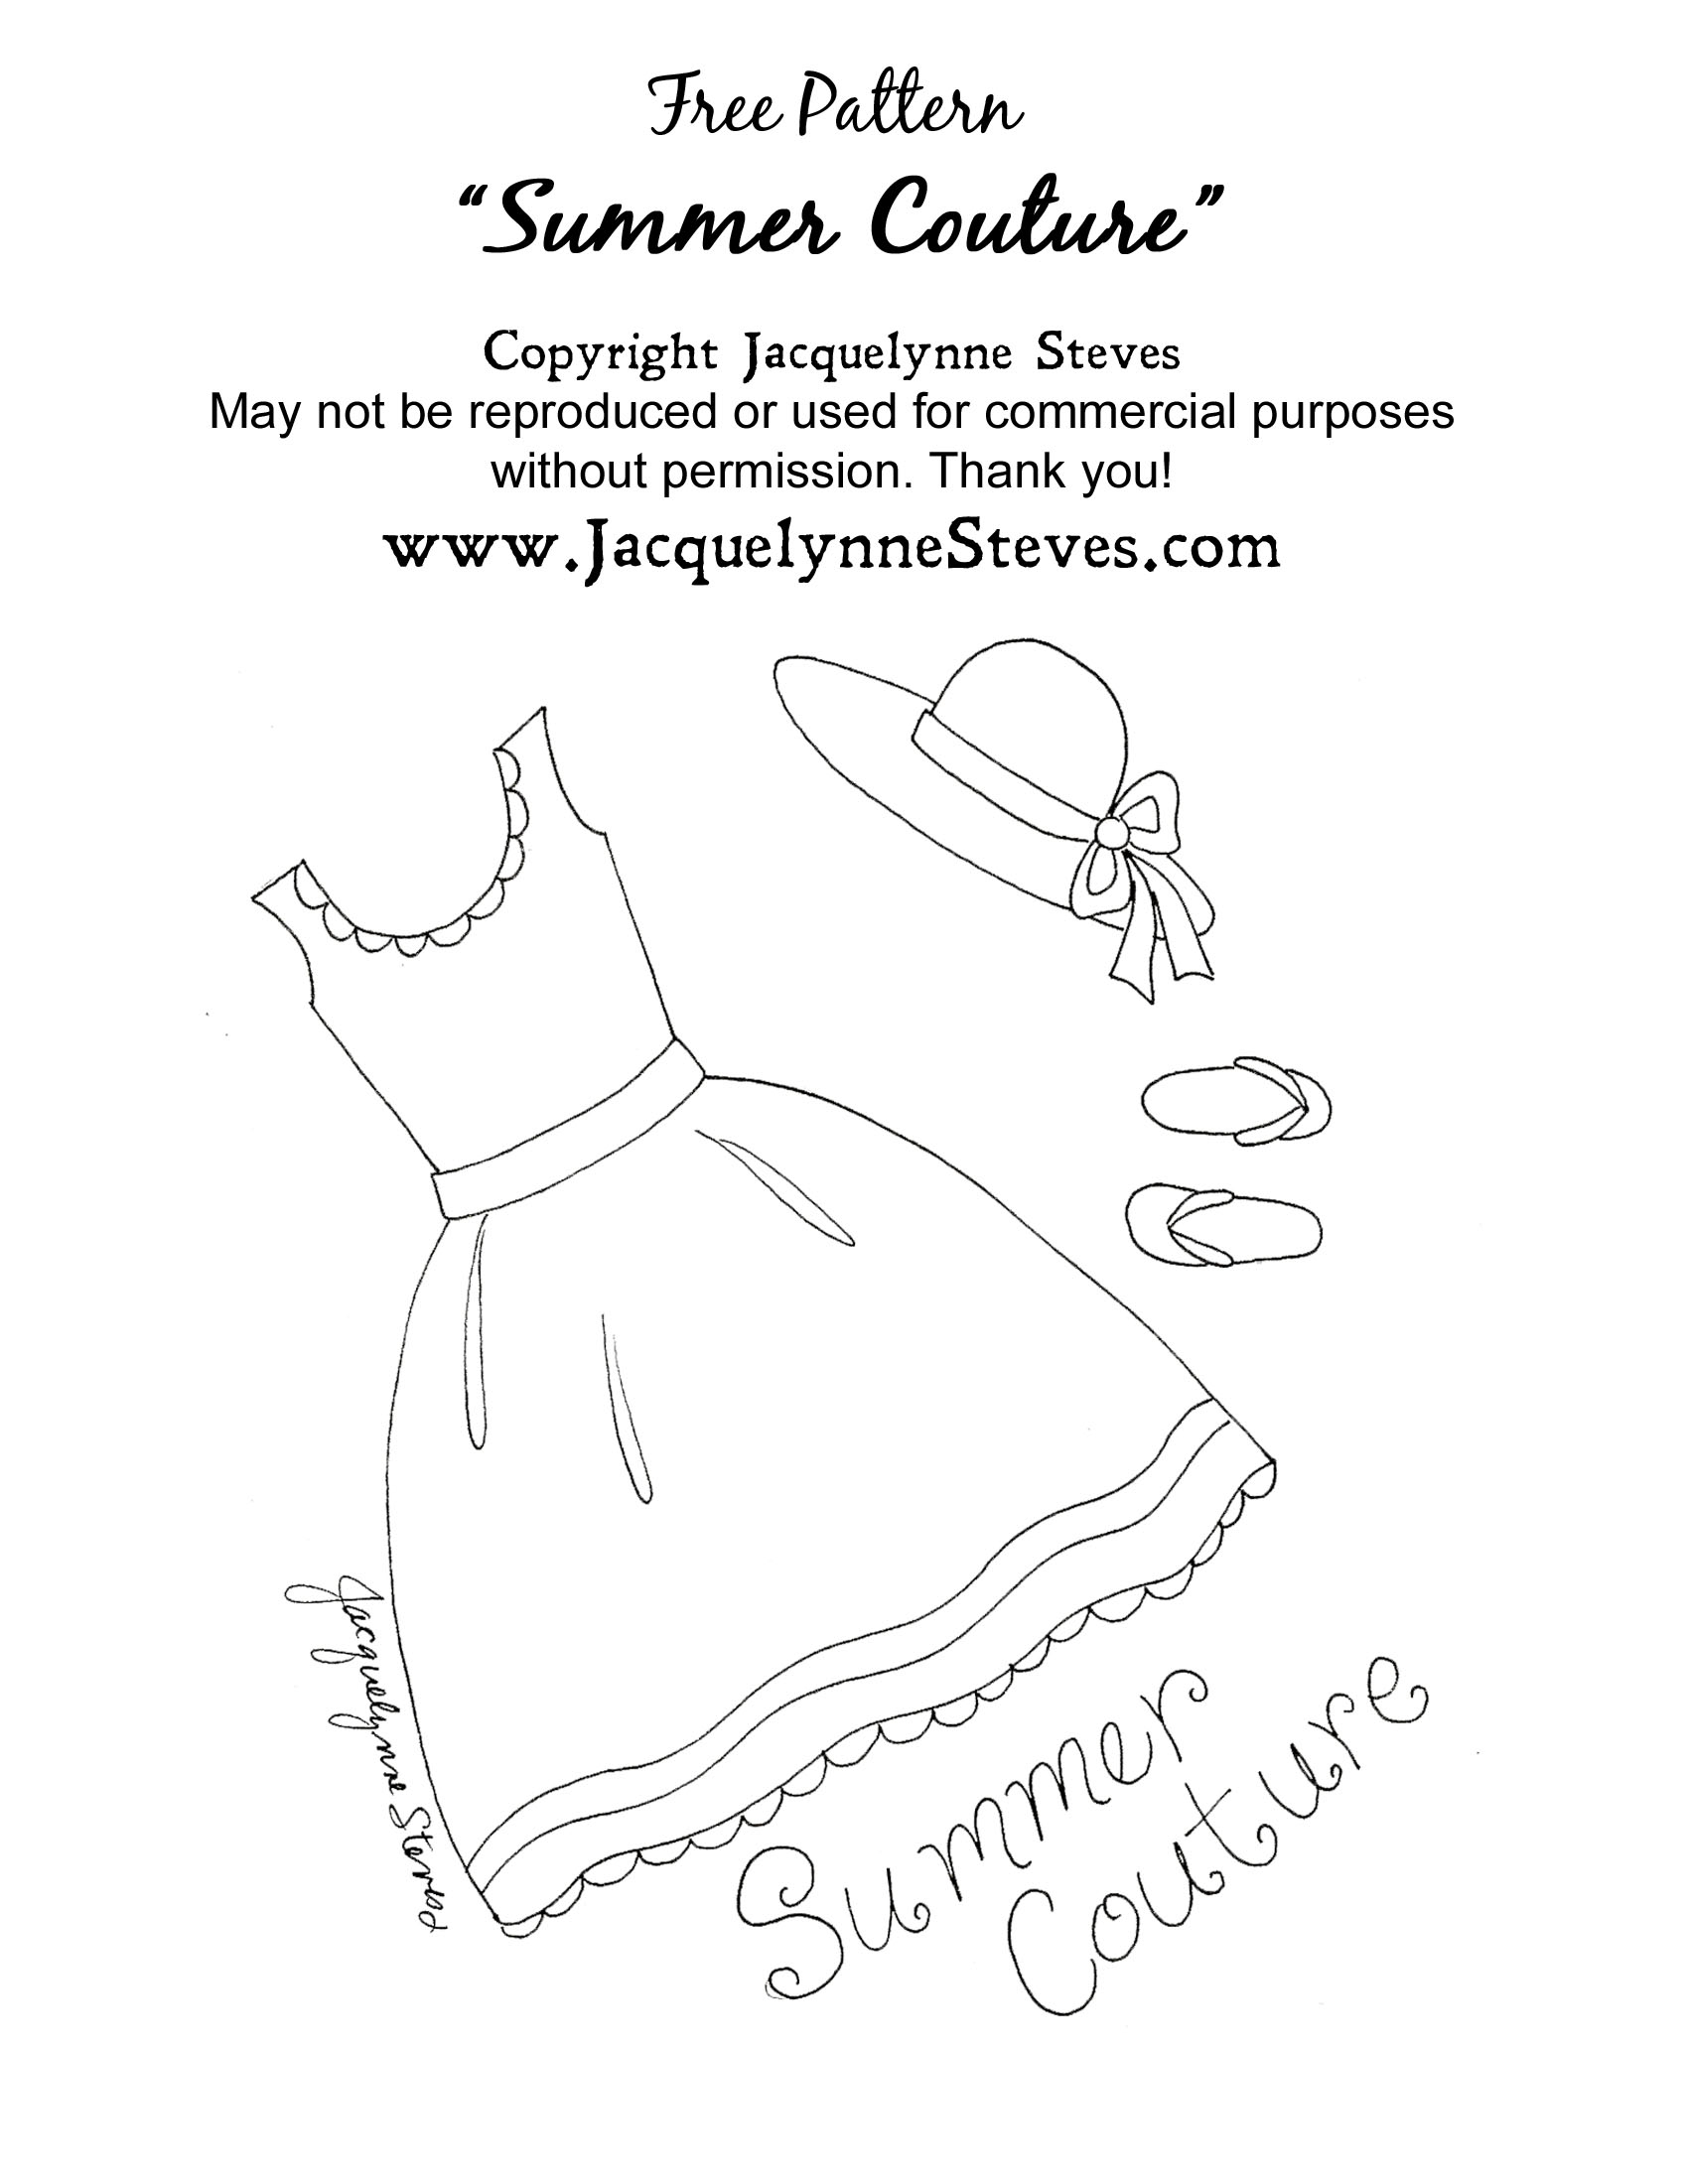 Make Embroidery Pattern Free Summer Couture Embroidery Pattern Jacquelynne Steves